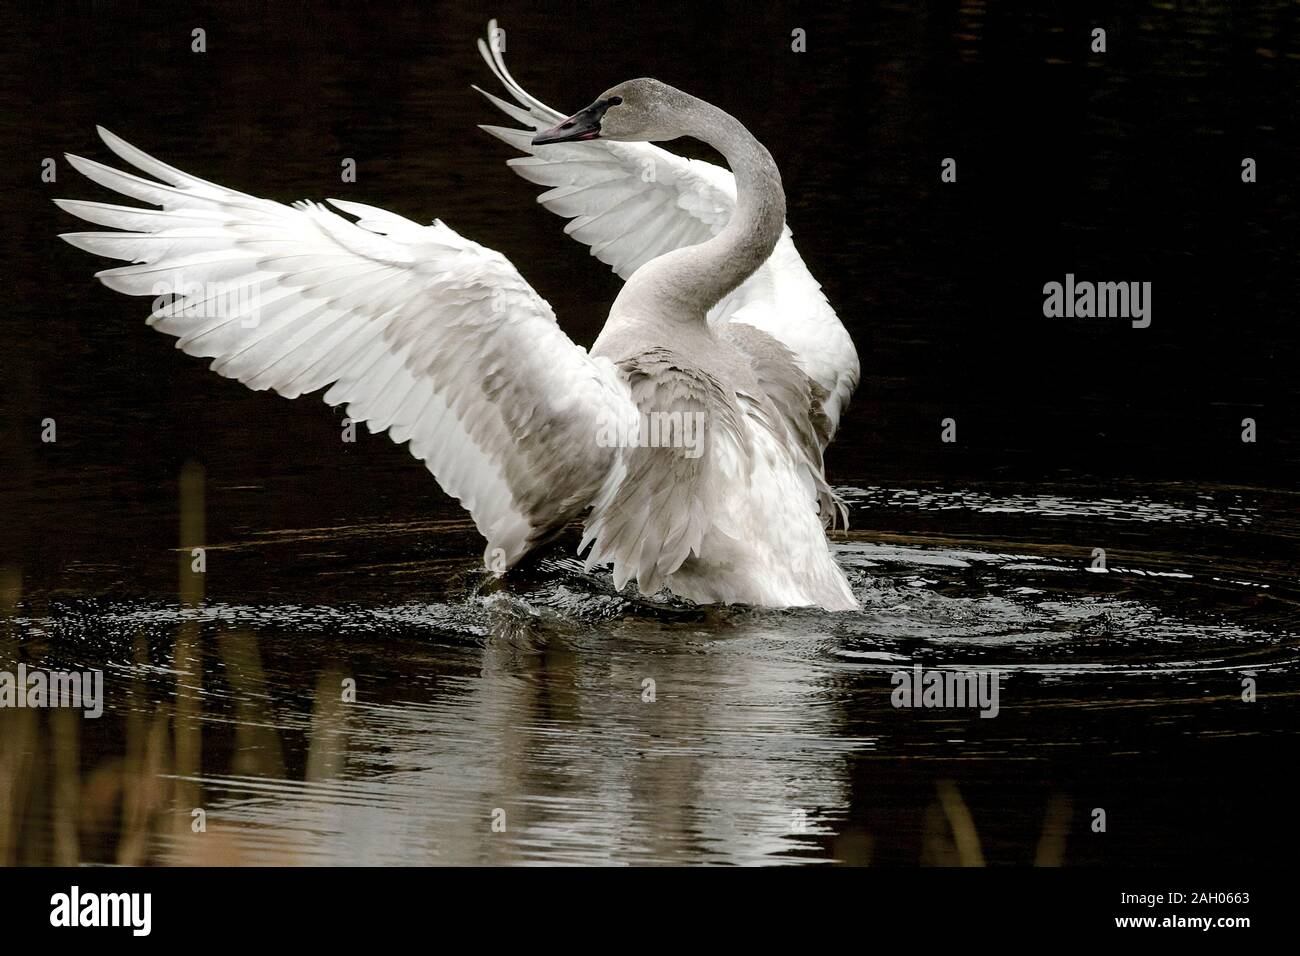 A young Trumpeter swan (Cygnus buccinator) flapping its wings spreading ripples in the water against a black background. Stock Photo